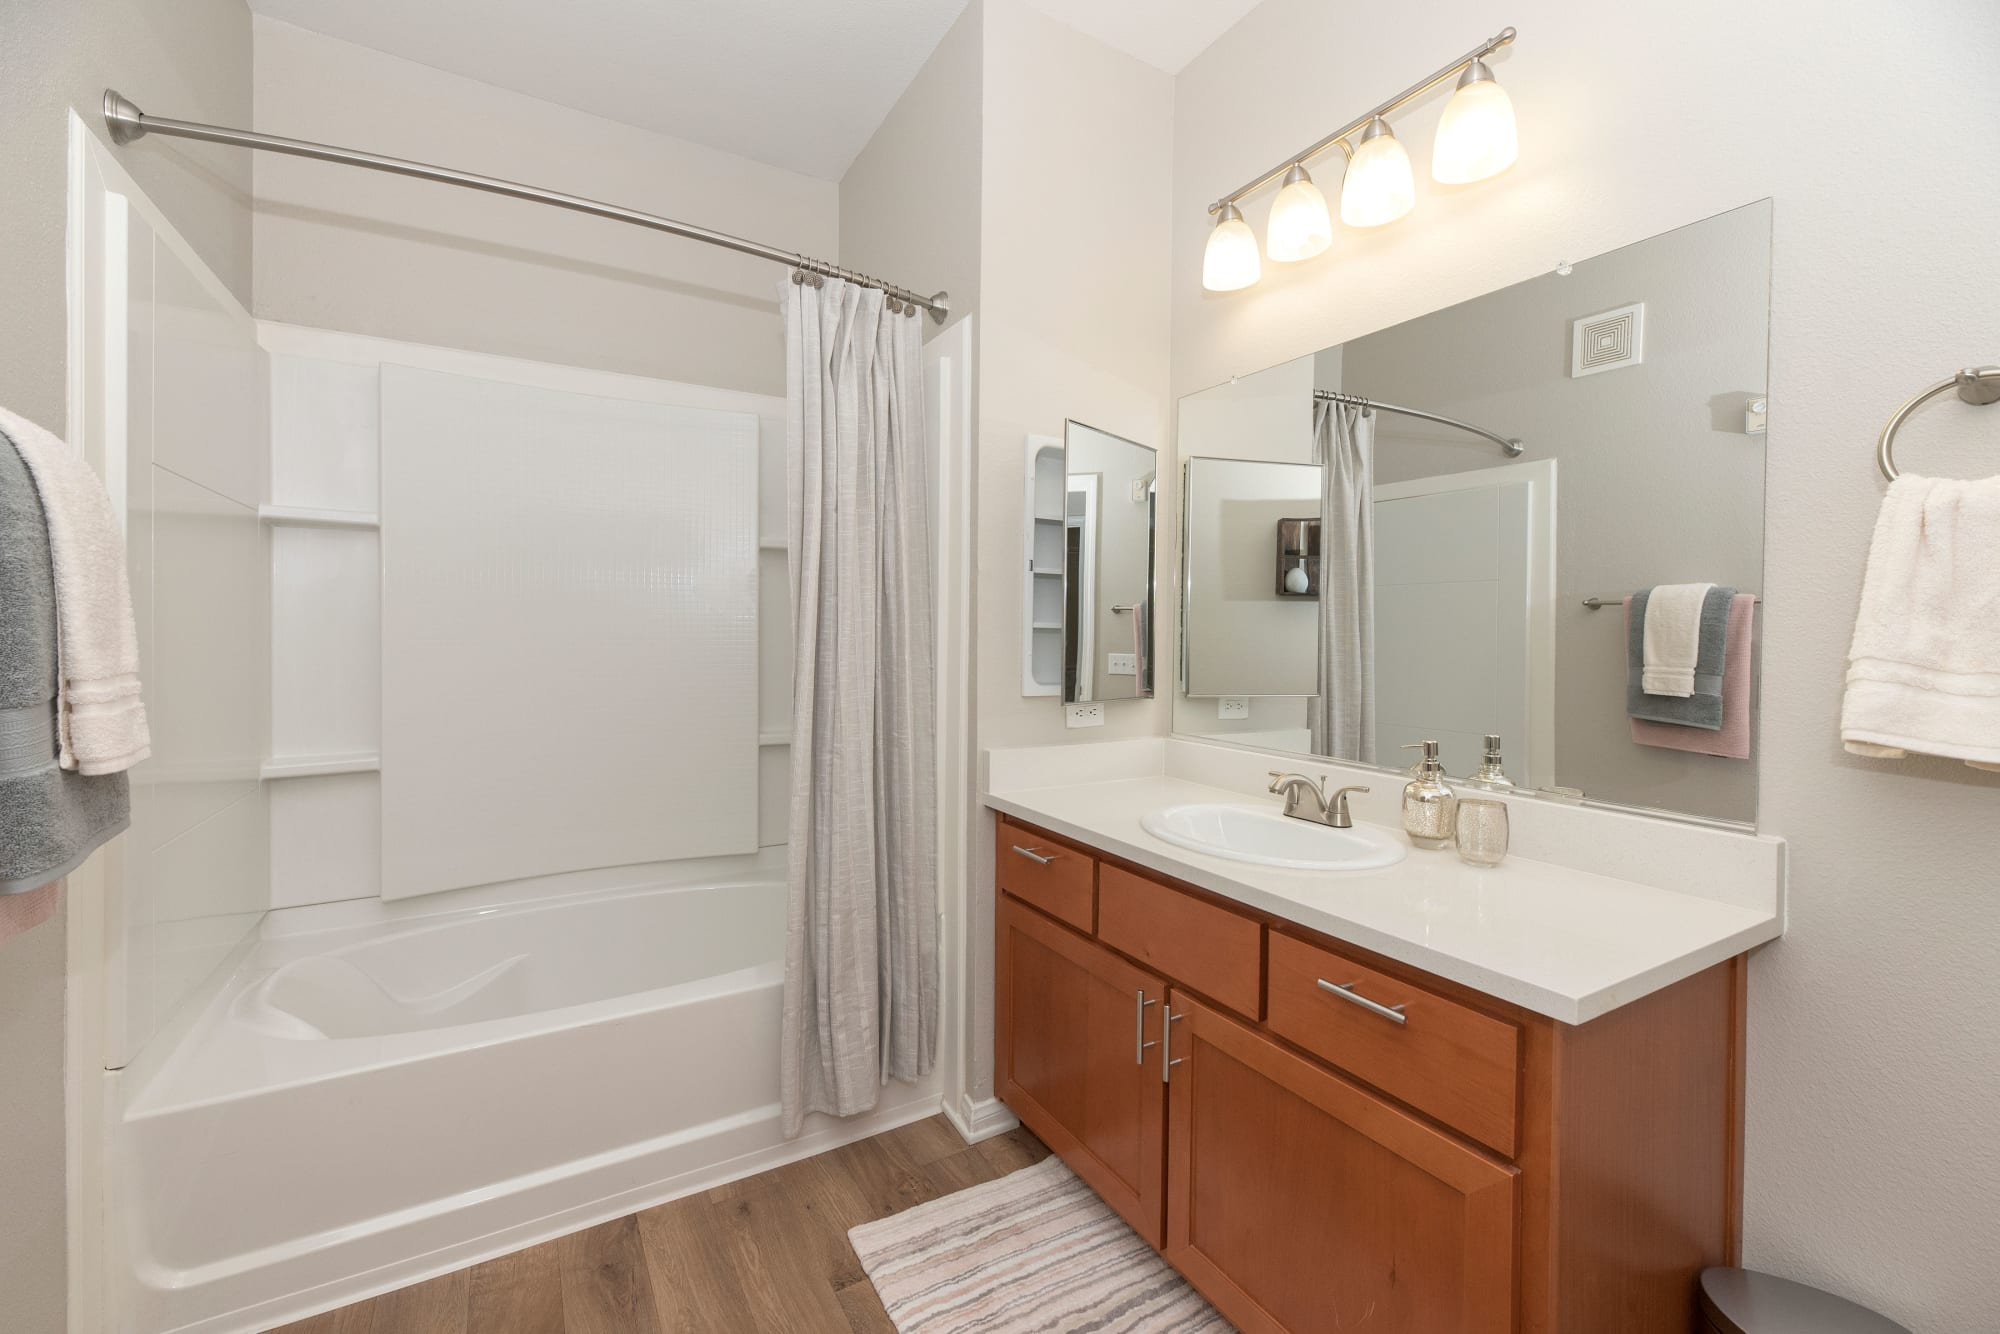 Bathroom in apartment at Avion Apartments in Rancho Cordova, California